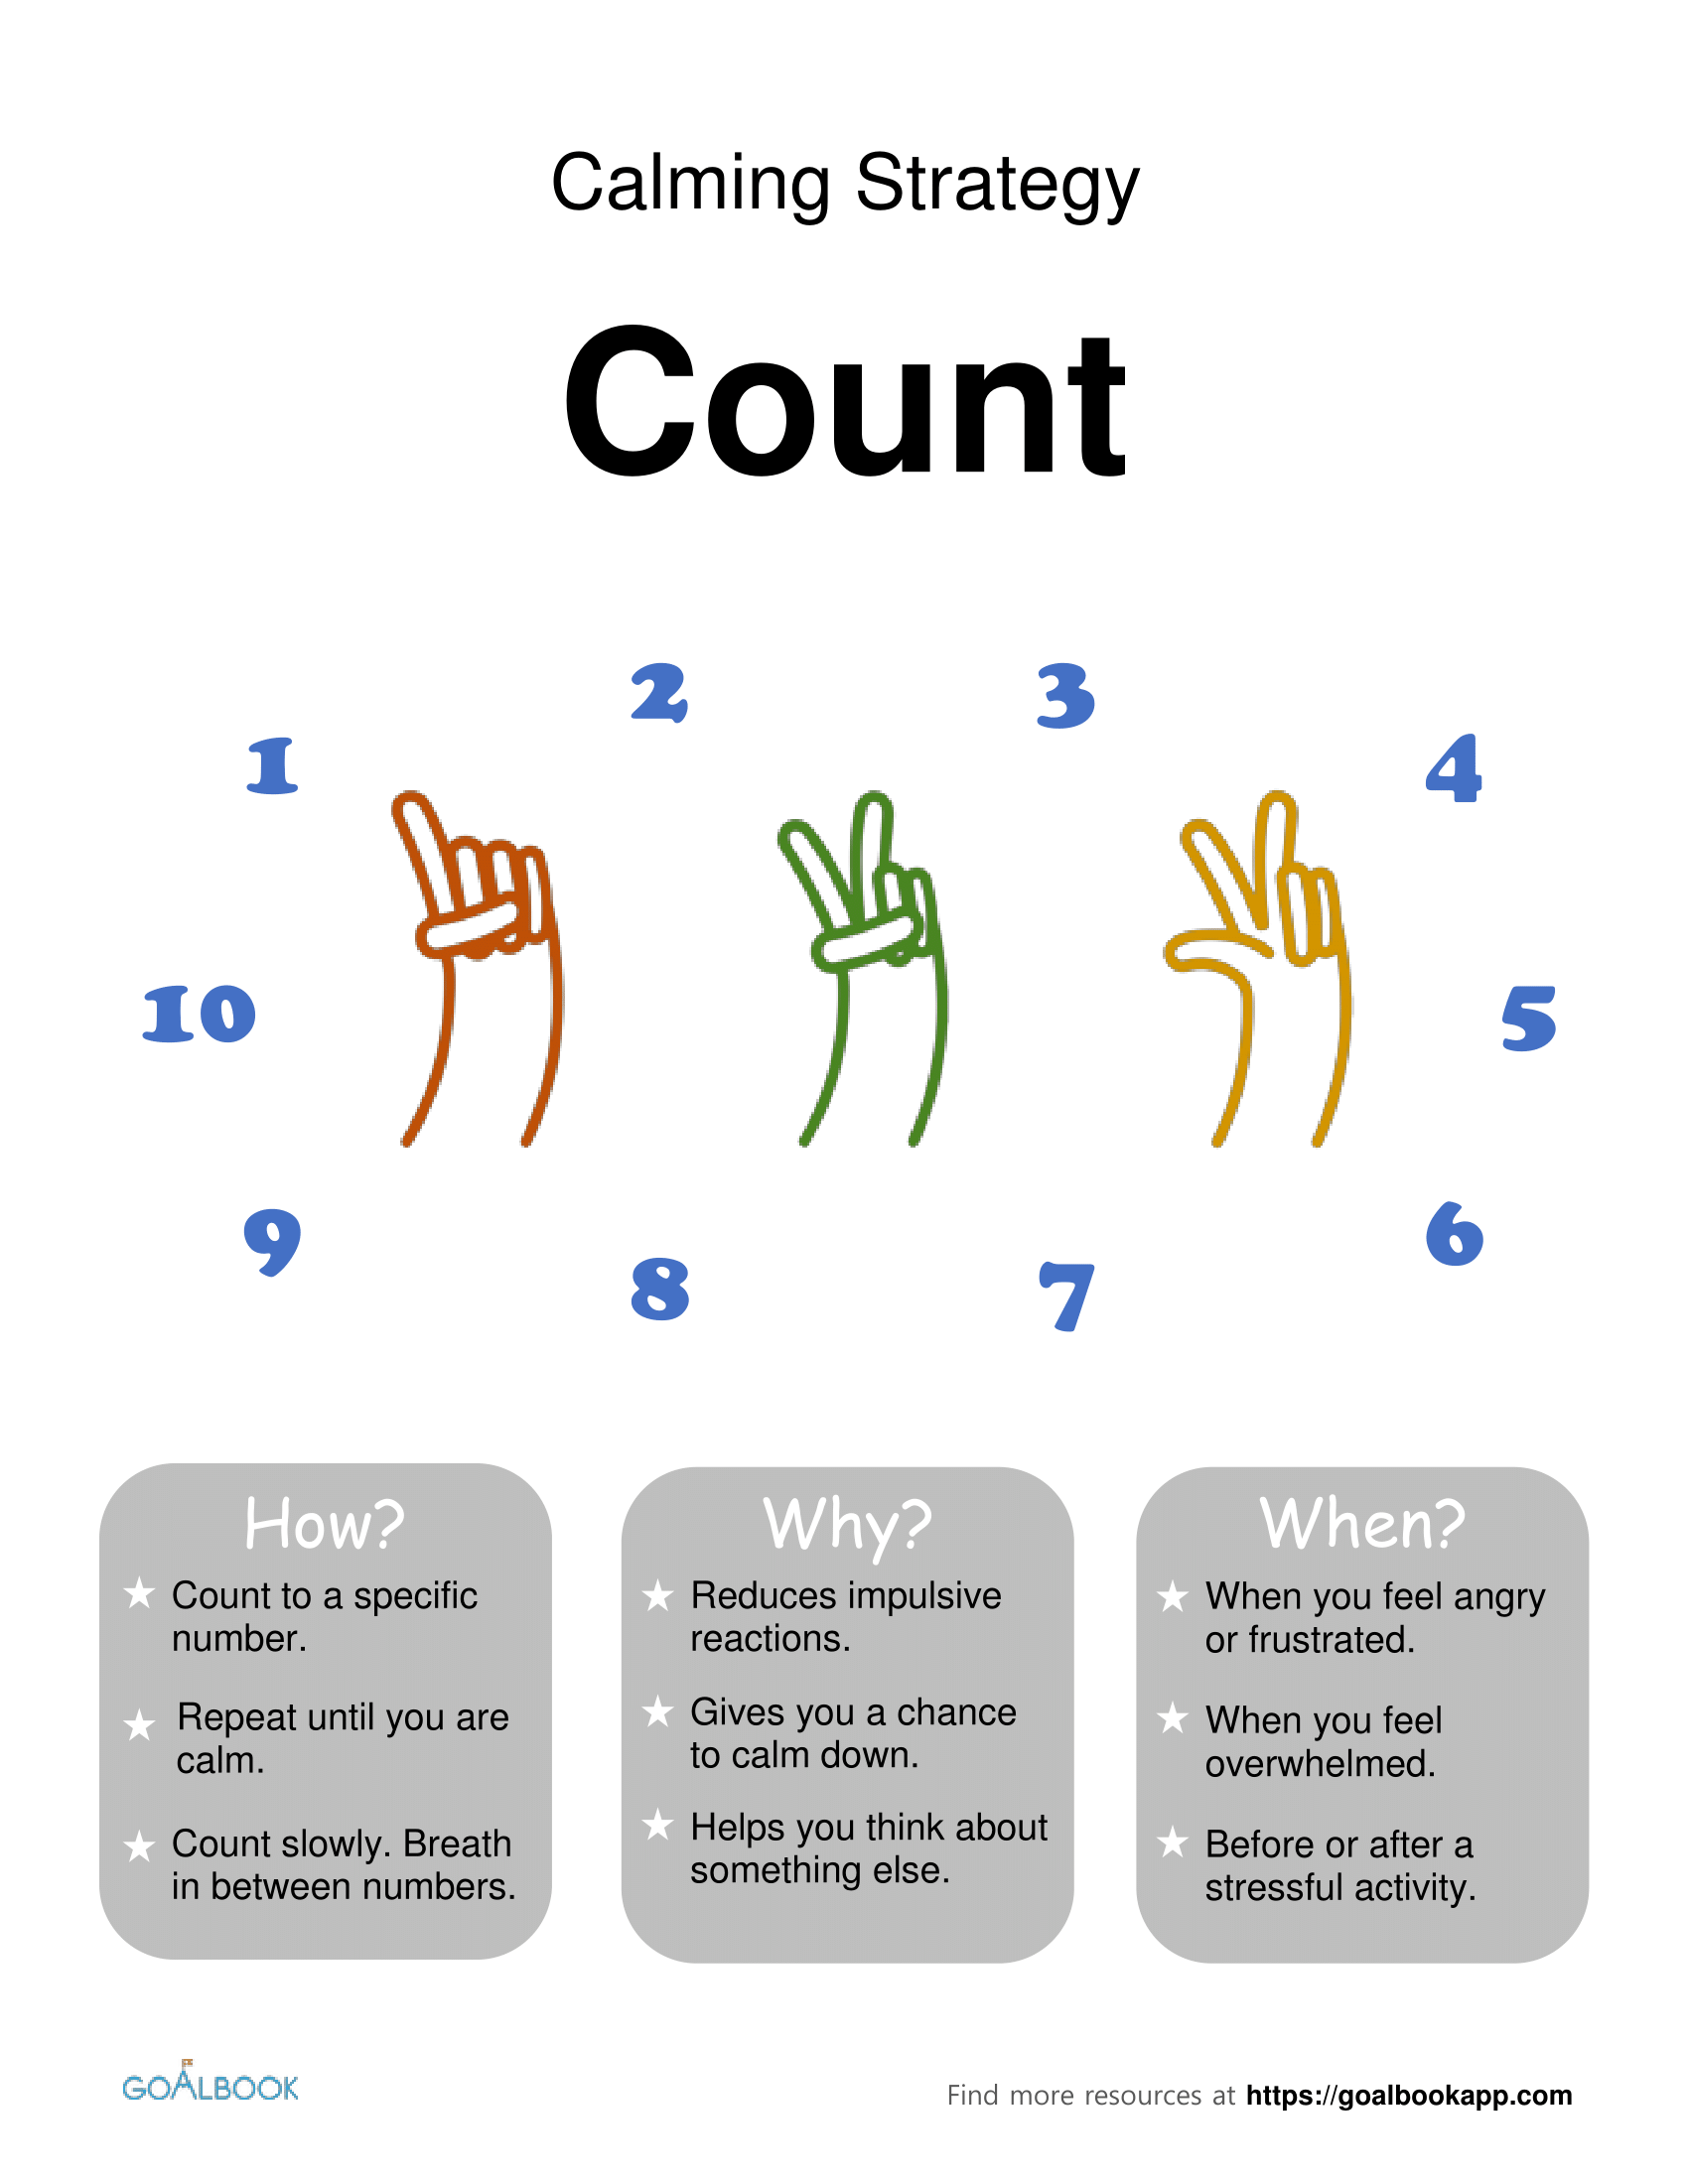 Count: Calming Strategy Poster